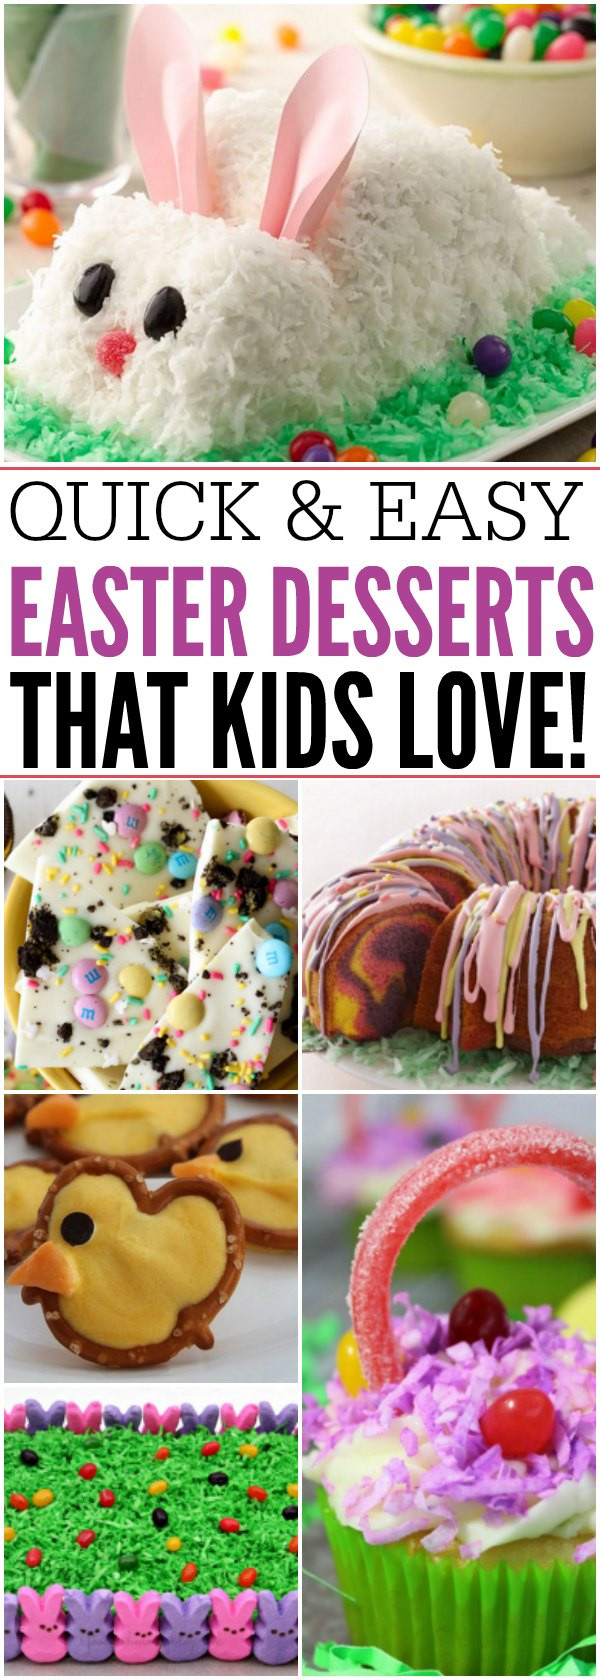 Quick And Easy Easter Desserts  16 Quick and Easy Easter Dessert Recipes That Everyone